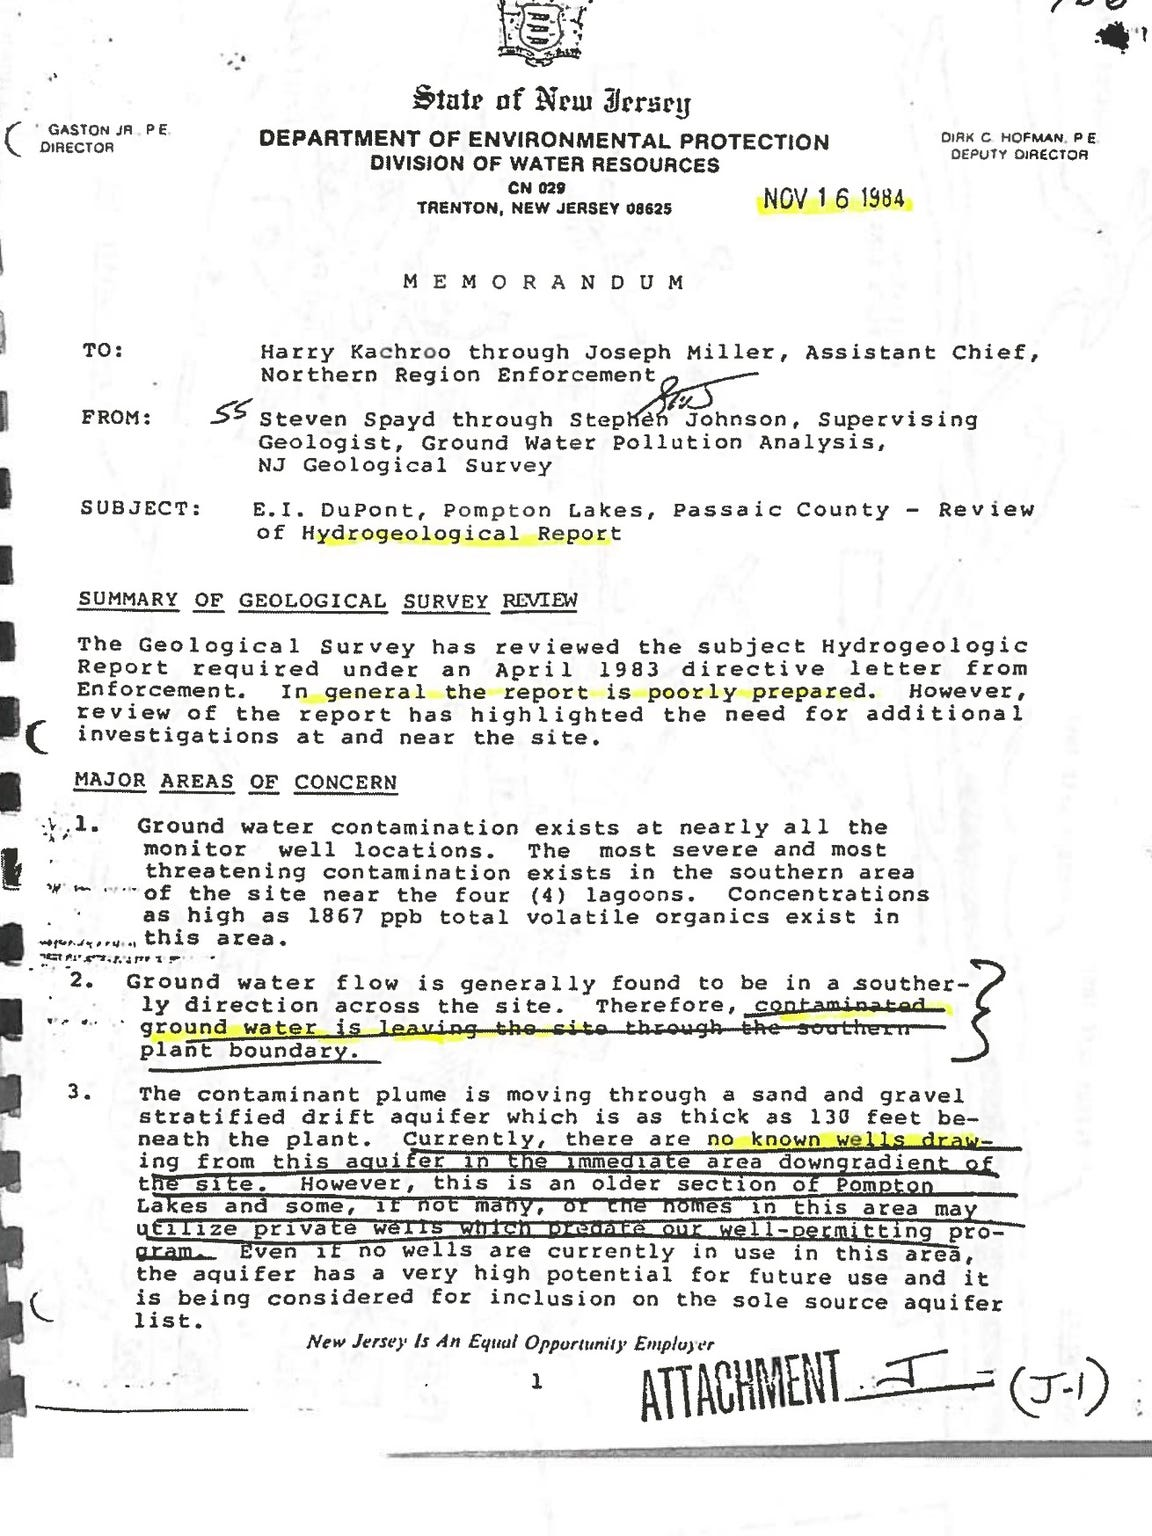 Internal DEP document in 1984 makes first mention that solvents were migrating off DuPont property.